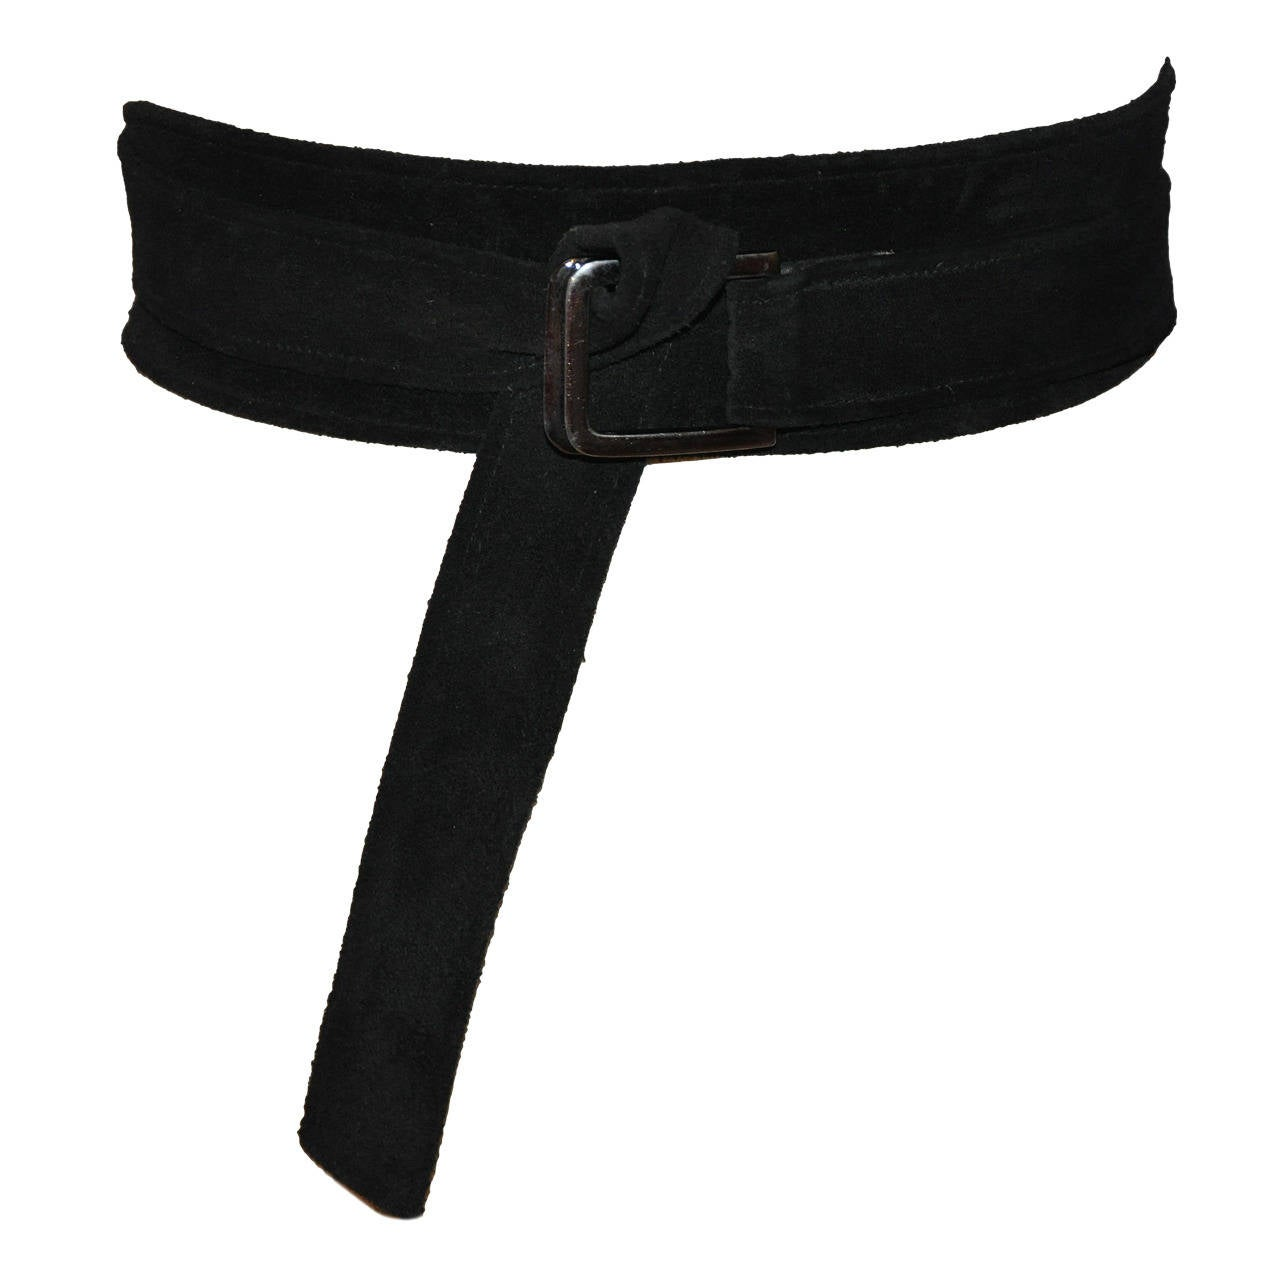 Yves Saint Laurent Double-Layer Black Suede Wrap Belt 1